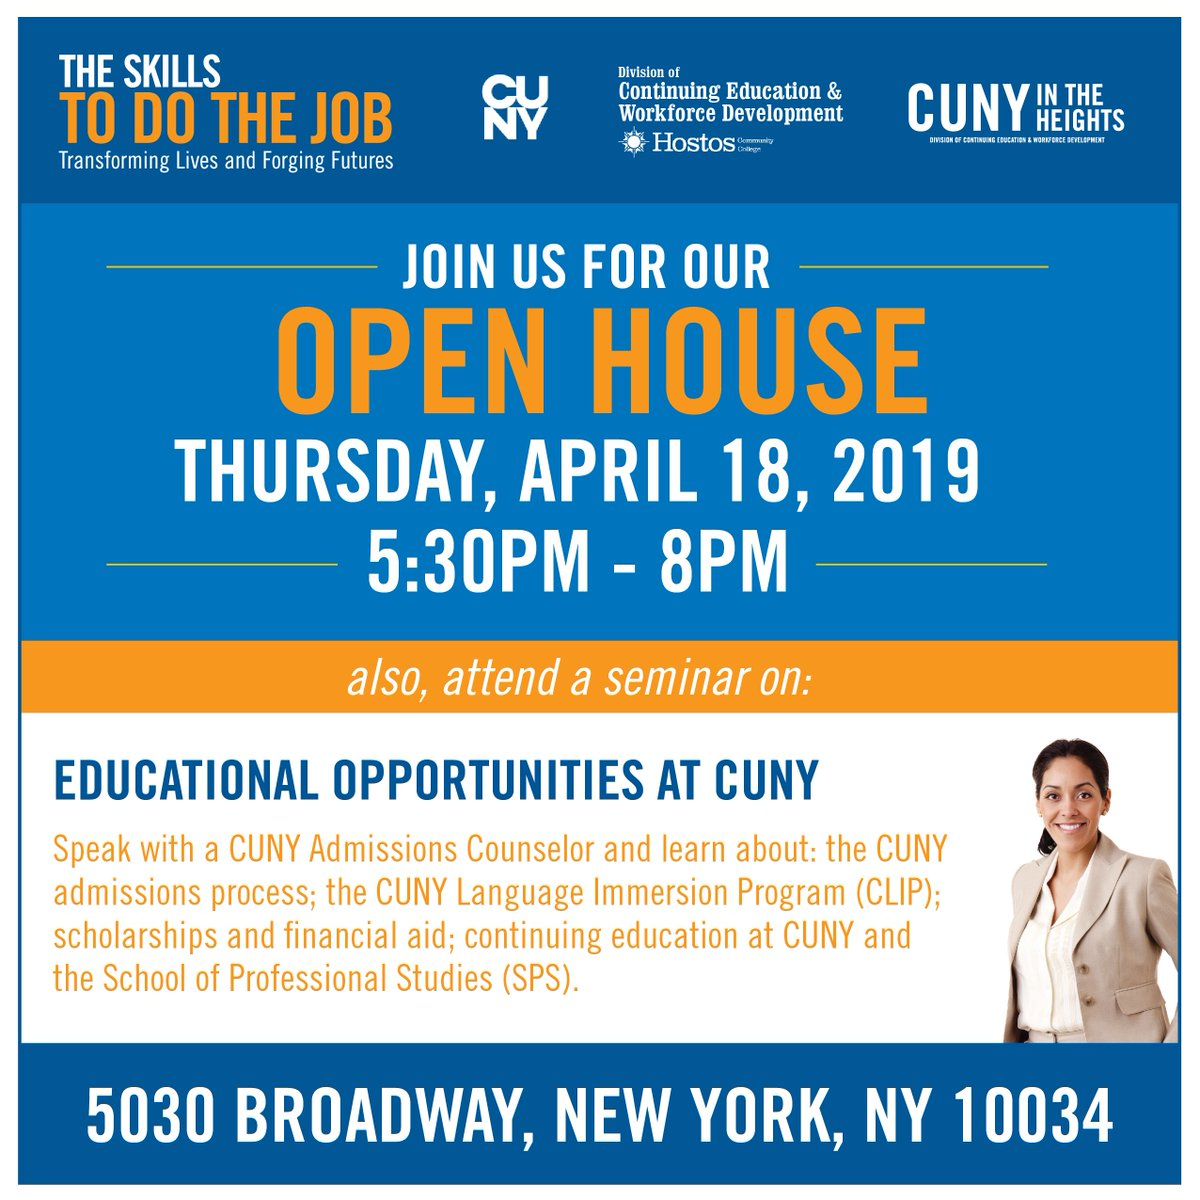 CUNY in the Heights (@CUNYintheHeight) | Twitter